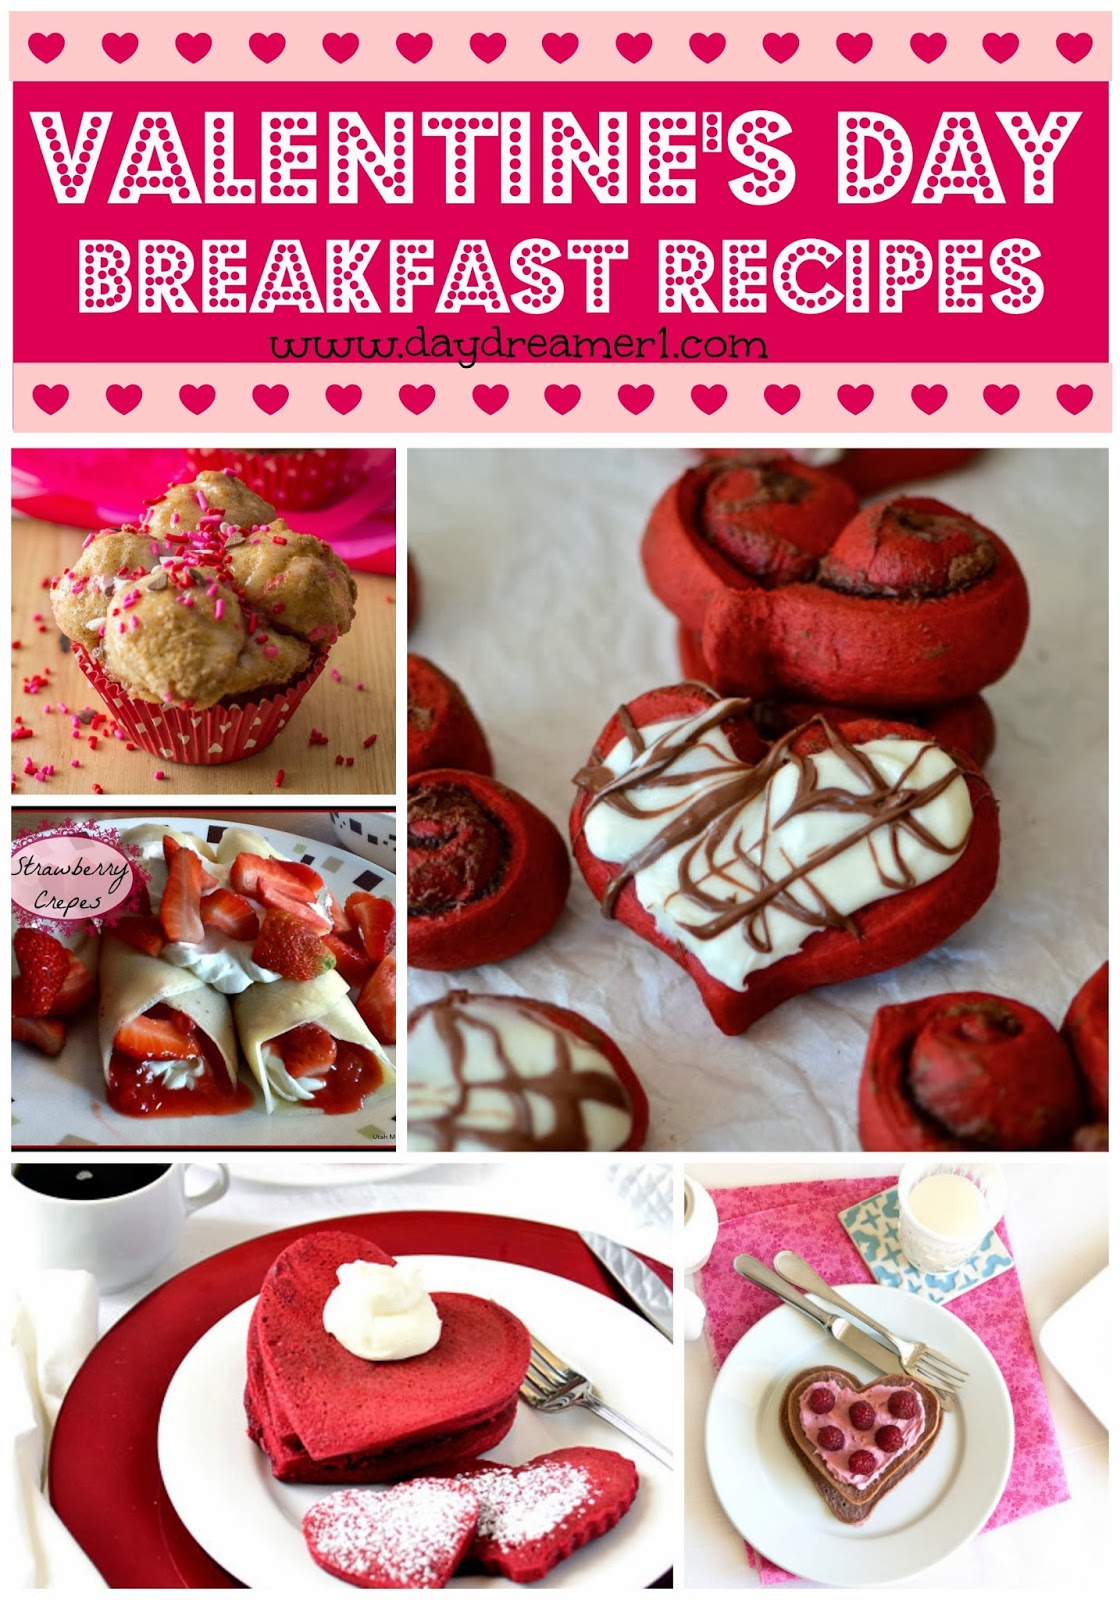 Breakfast Recipesvalentines Day  Day Dreamer. Pumpkin Carving Ideas Boston Red Sox. Kitchen Design Software Lowes. Home Ideas Naga City. Fireplace Makeover Ideas Before After. Kitchen Island Ideas Contemporary And Sleek. Proposal Ideas Orange County. Ideas For Organizing A Kitchen Pantry. Coffee Table Vignette Ideas